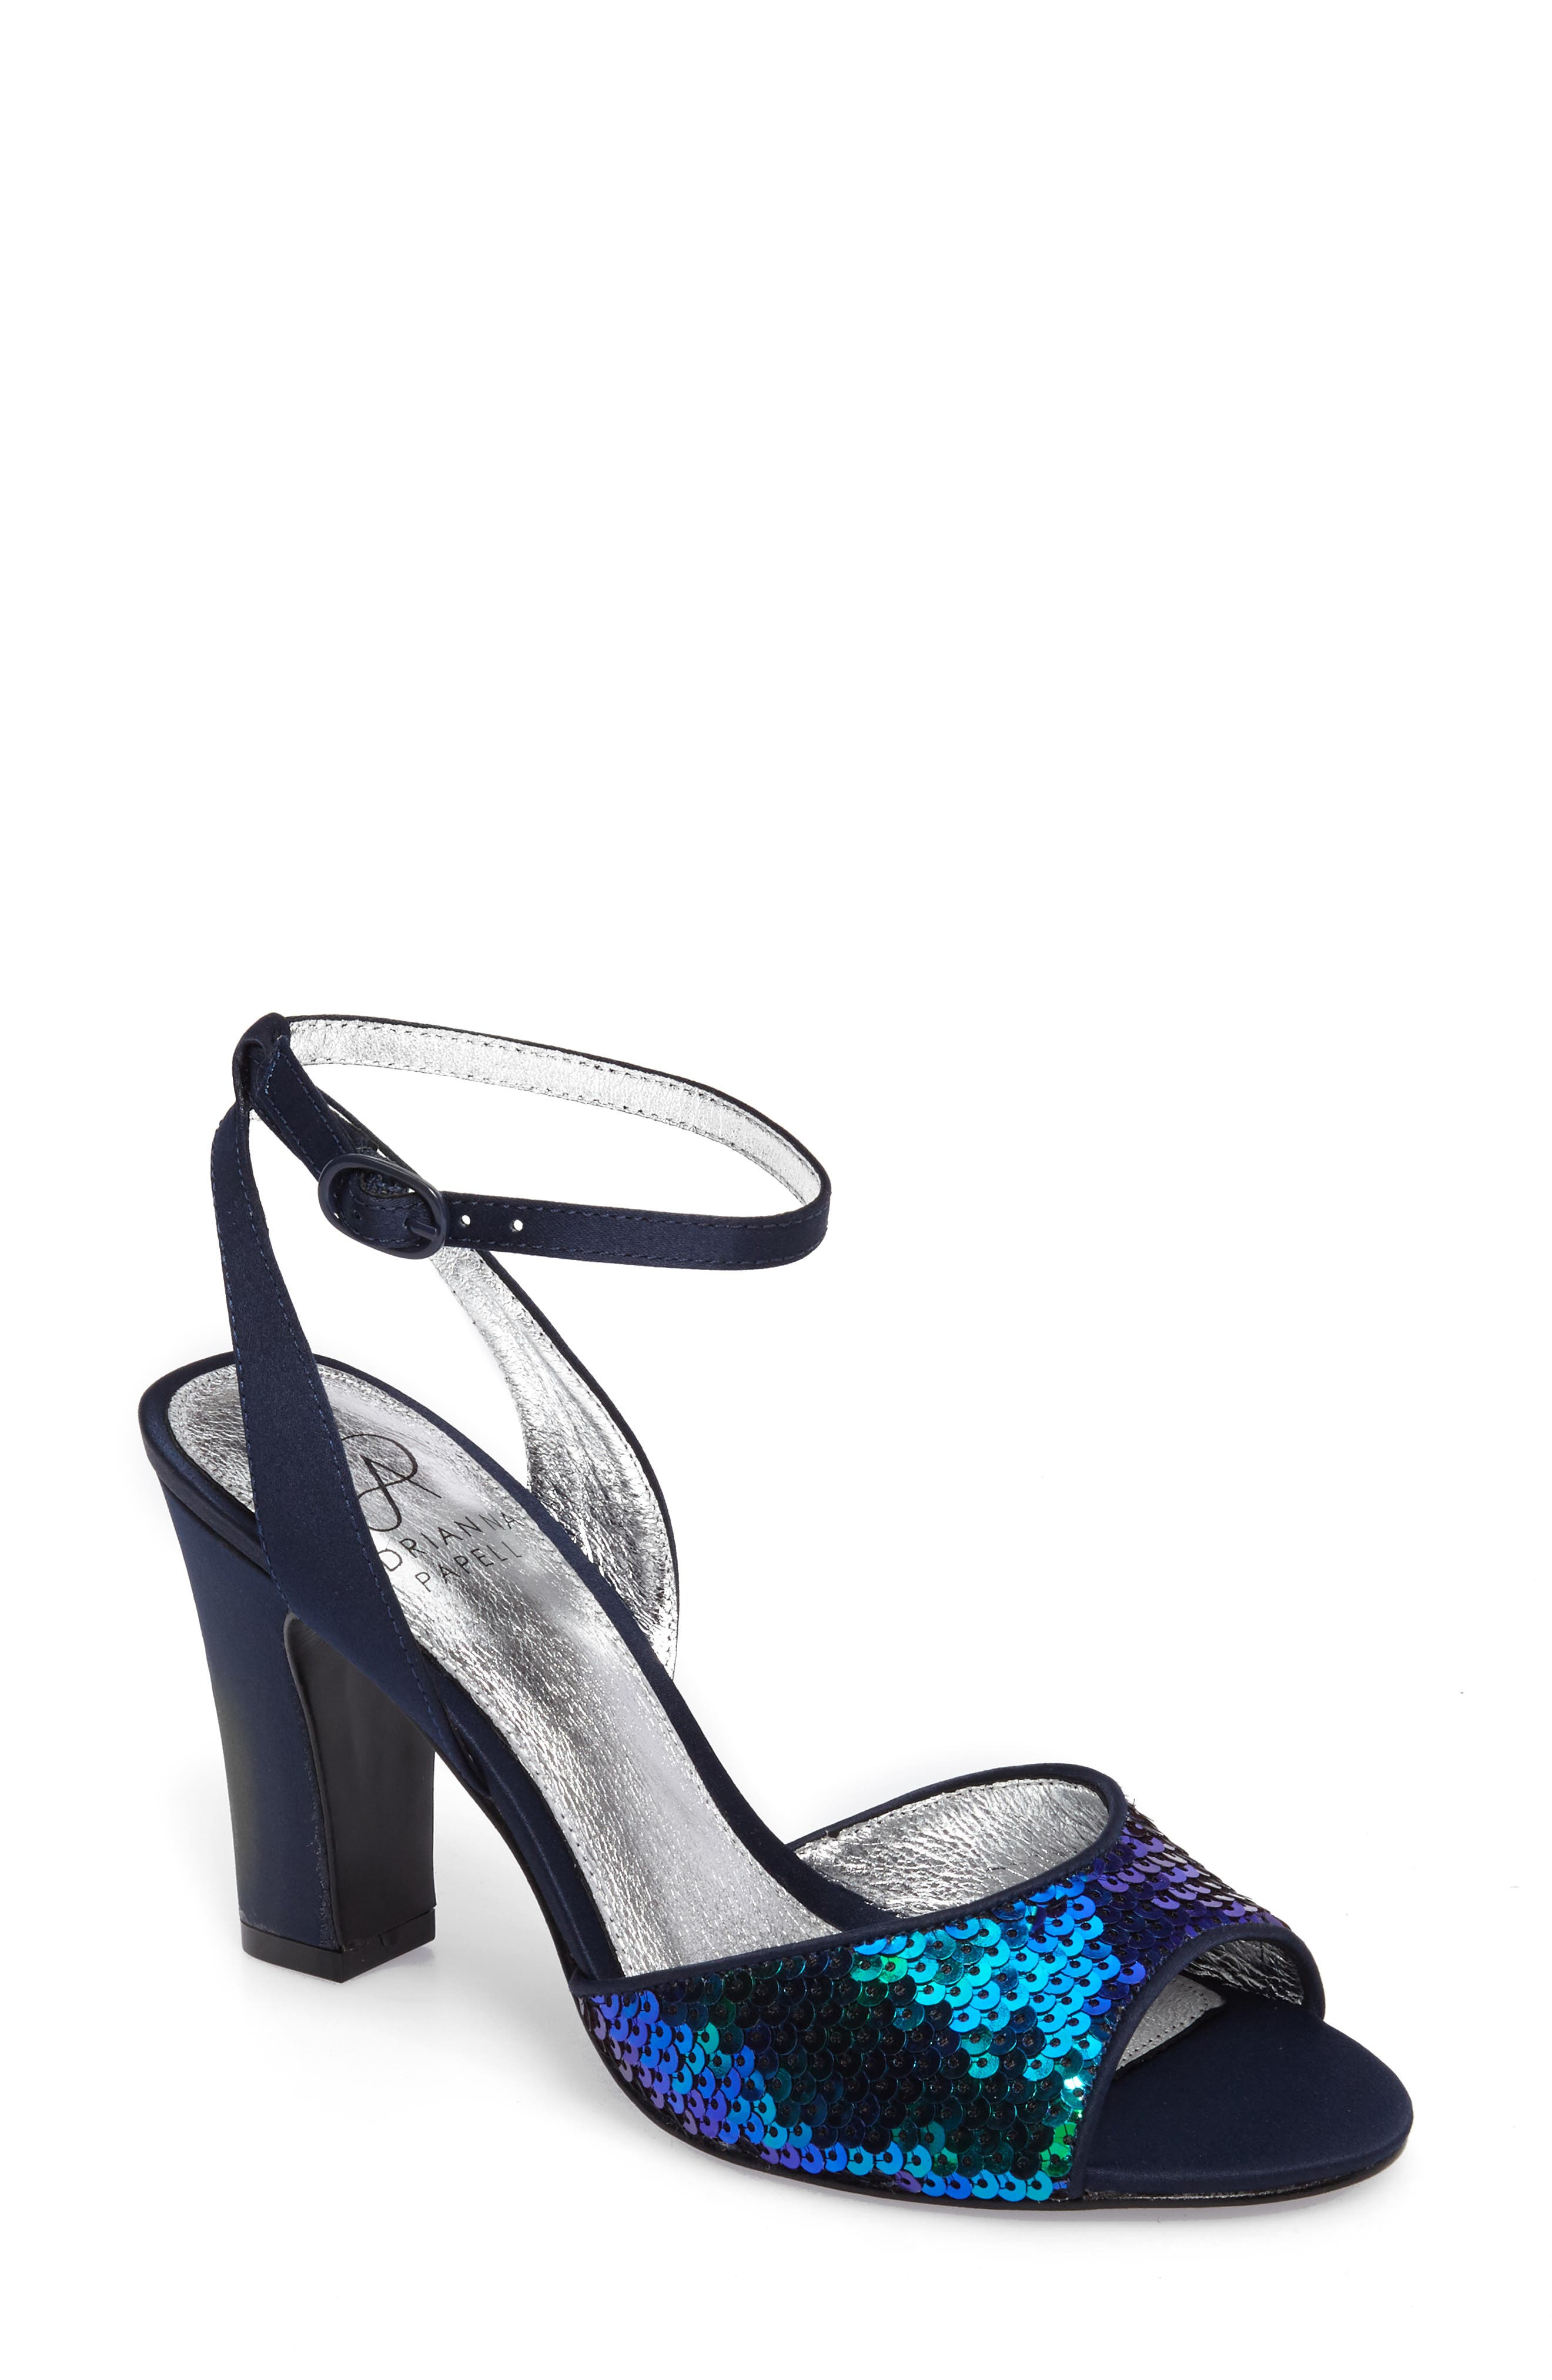 Alternate Image 1 Selected - Adrianna Papell Astrid Ankle Strap Sandal (Women)